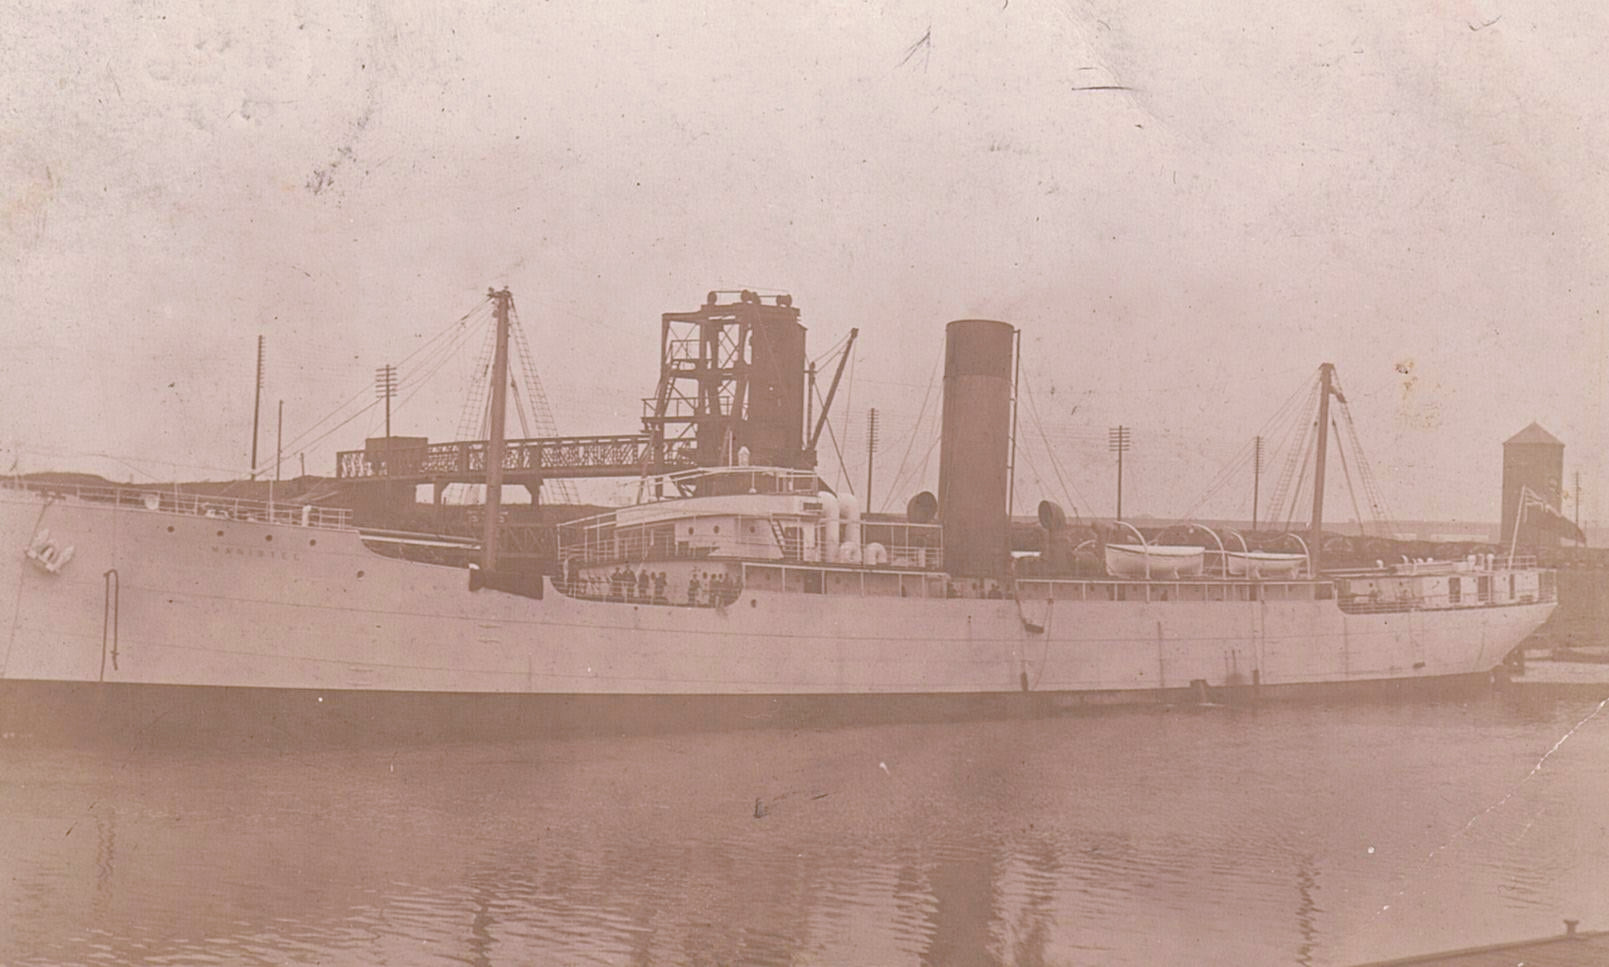 S.S. MANISTEE 1904-1917 REFRIDGERATED CARGO SHIP RPPC POSTCARD BRITISH